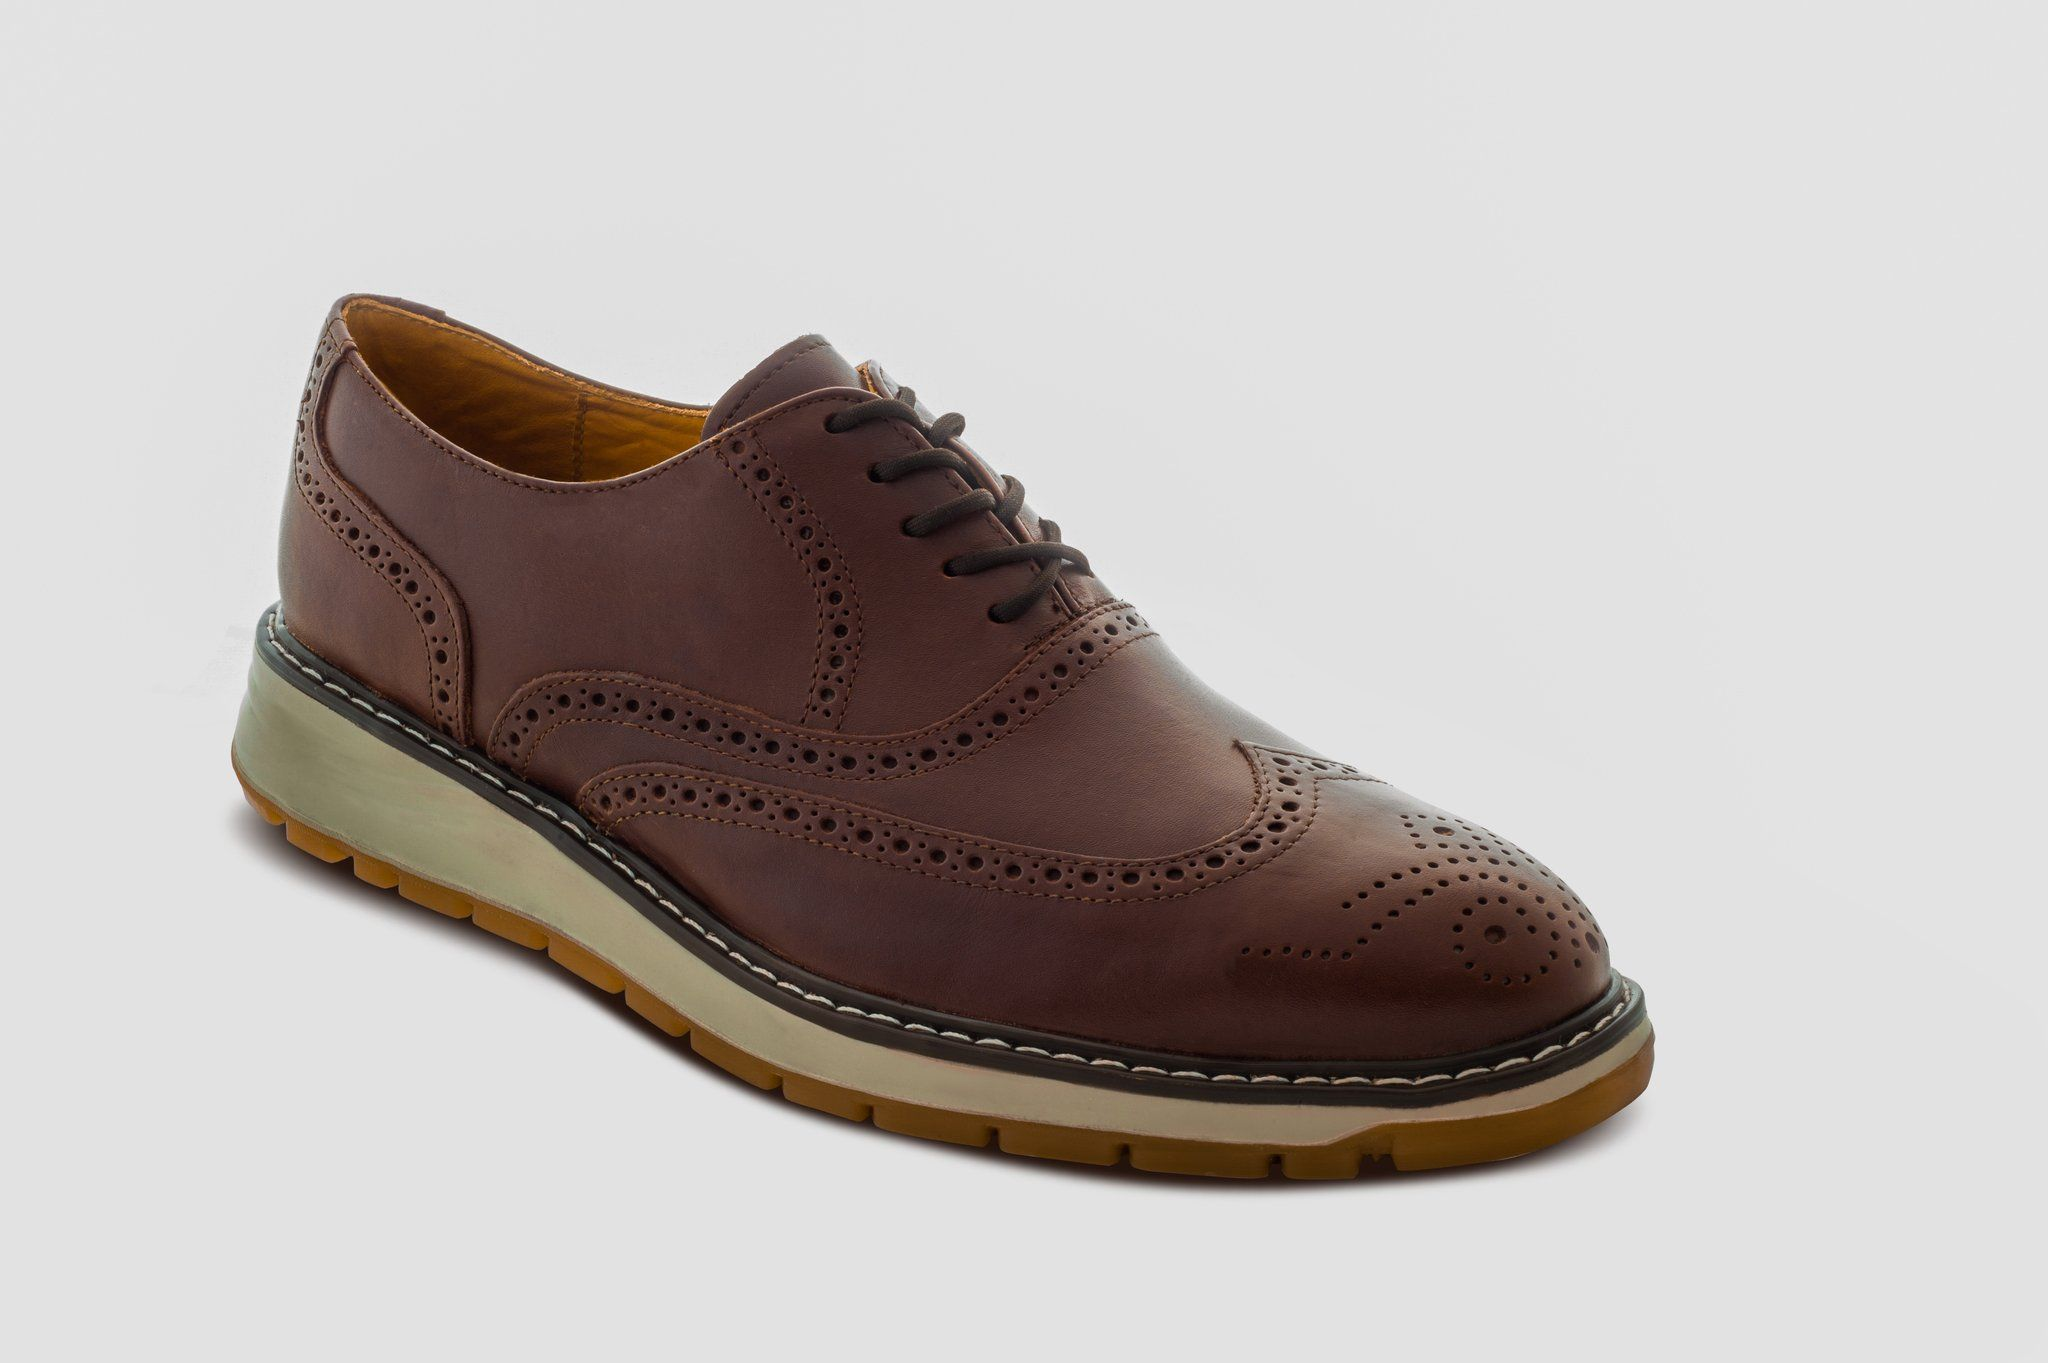 Executive Sport Safety Dress Shoes in